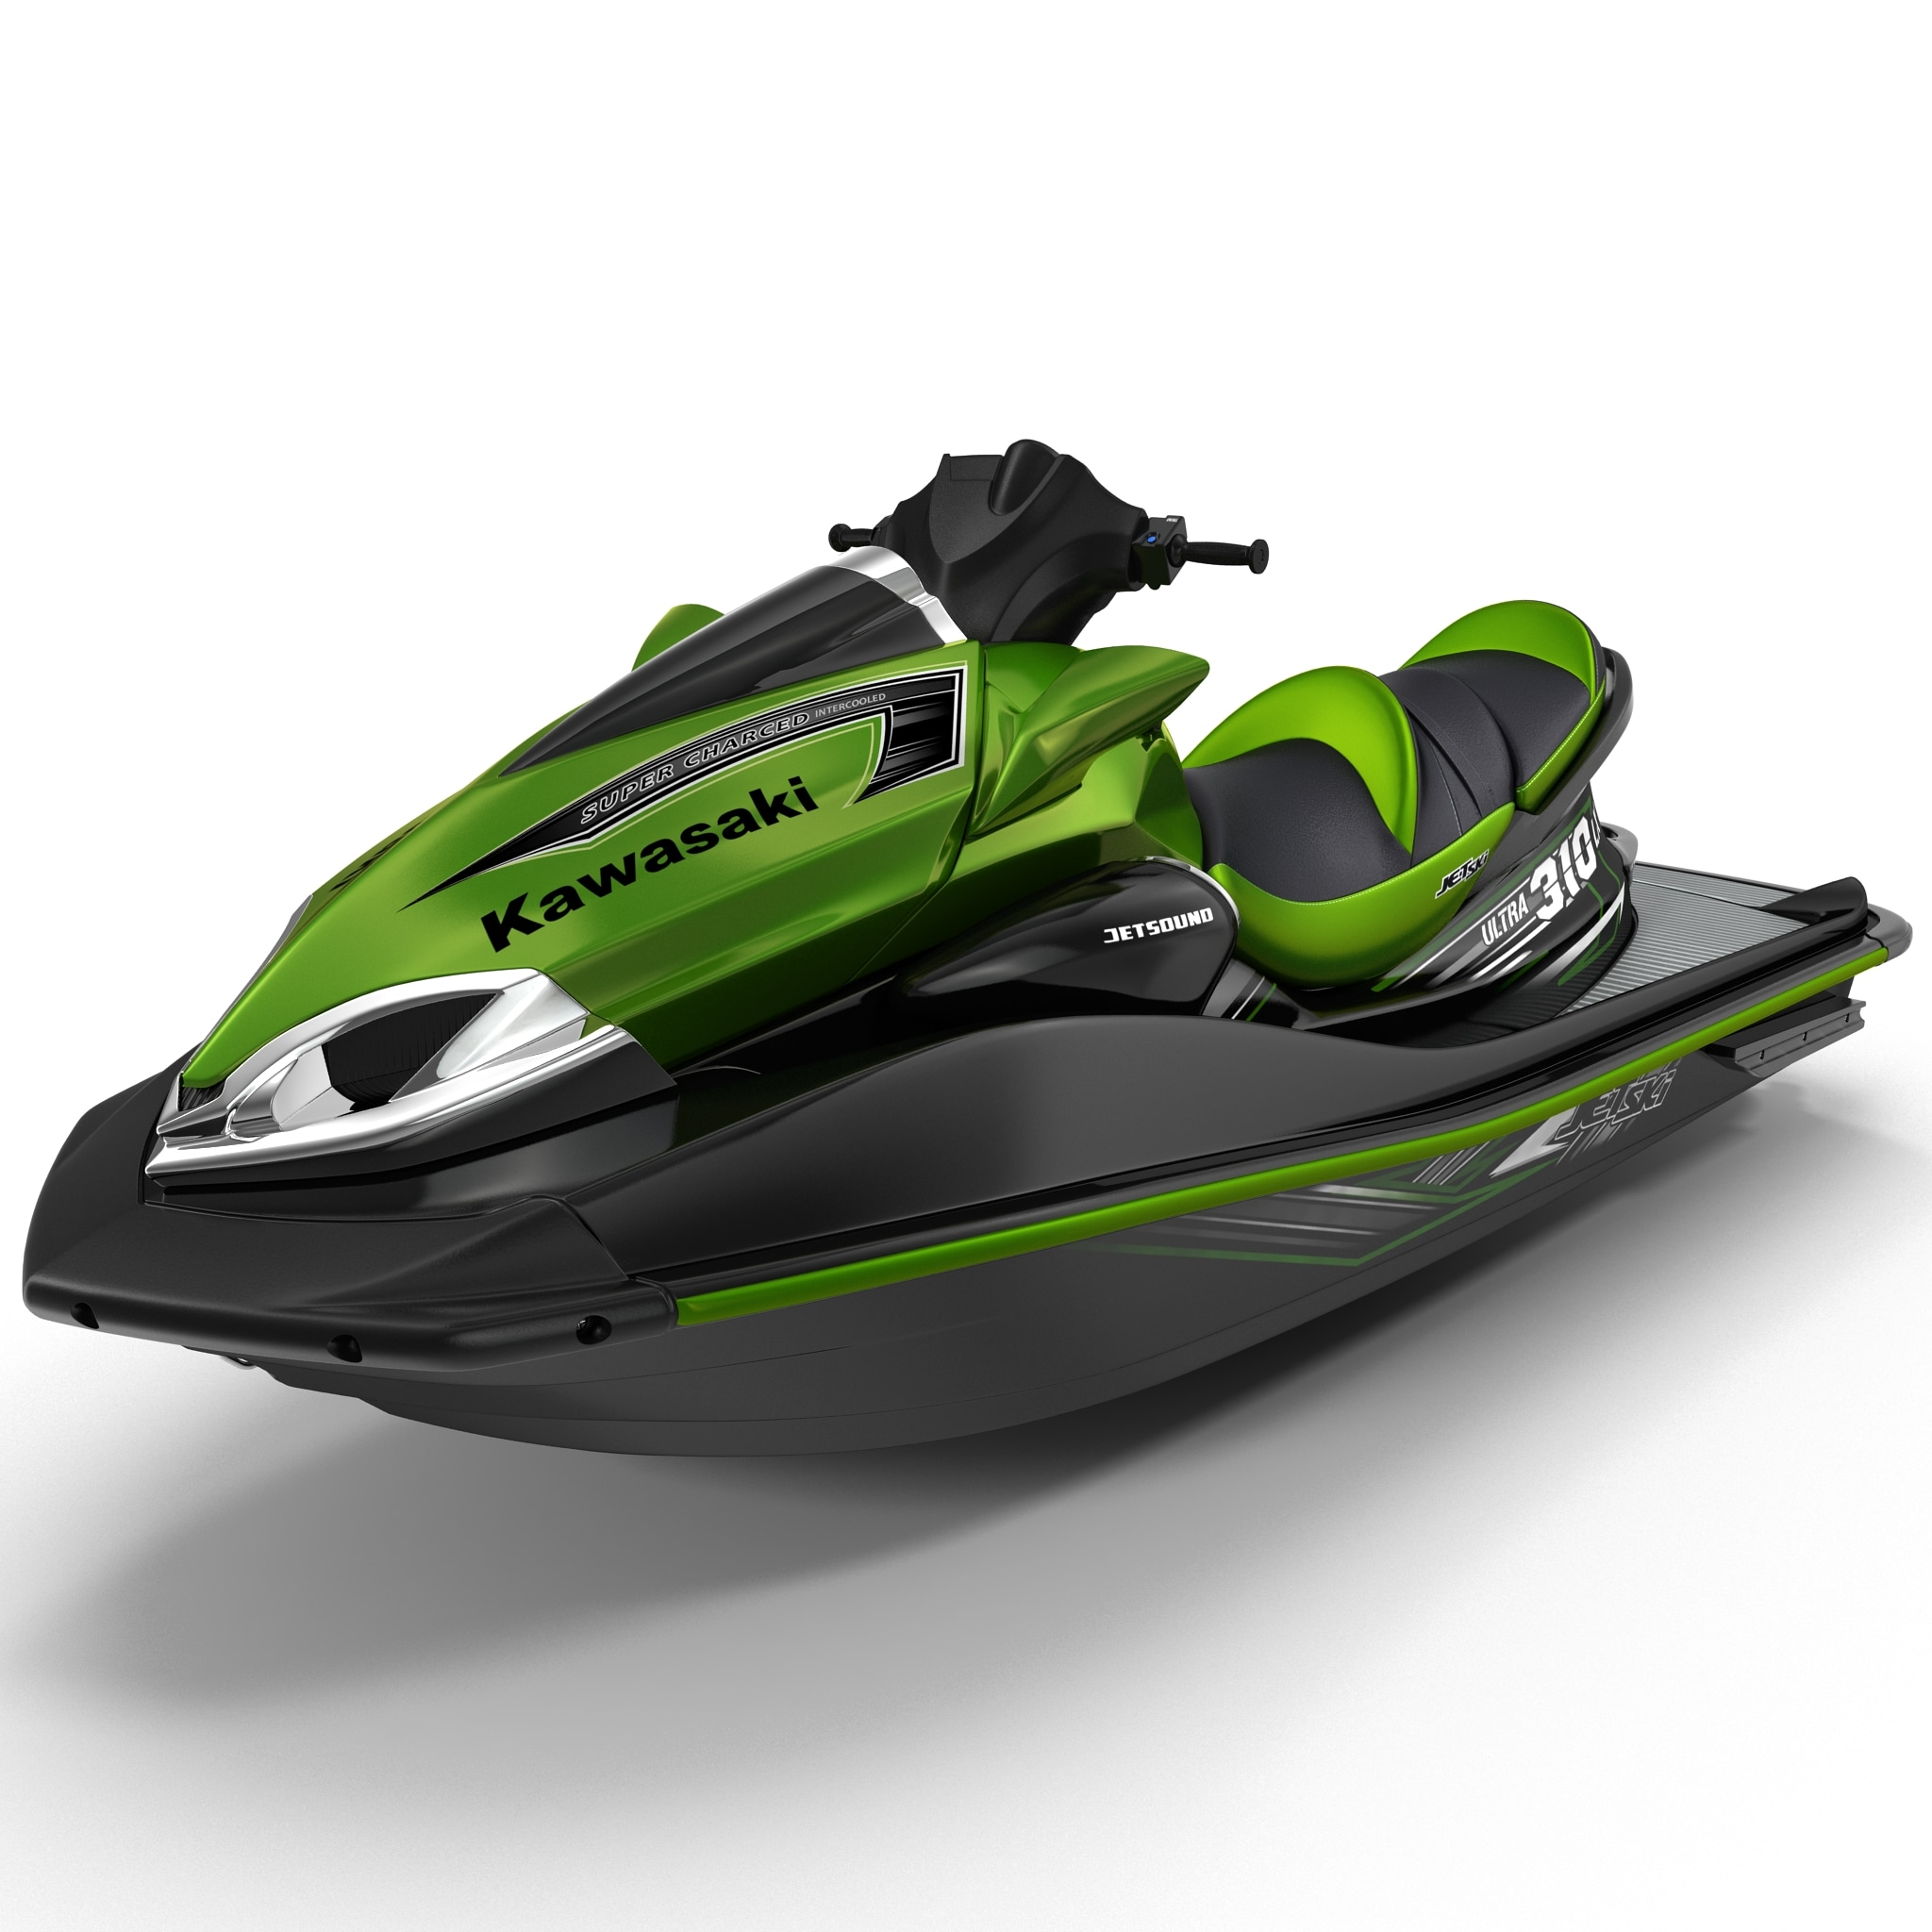 Searched 3d models for Kawasaki Ultra 310 Jet Ski